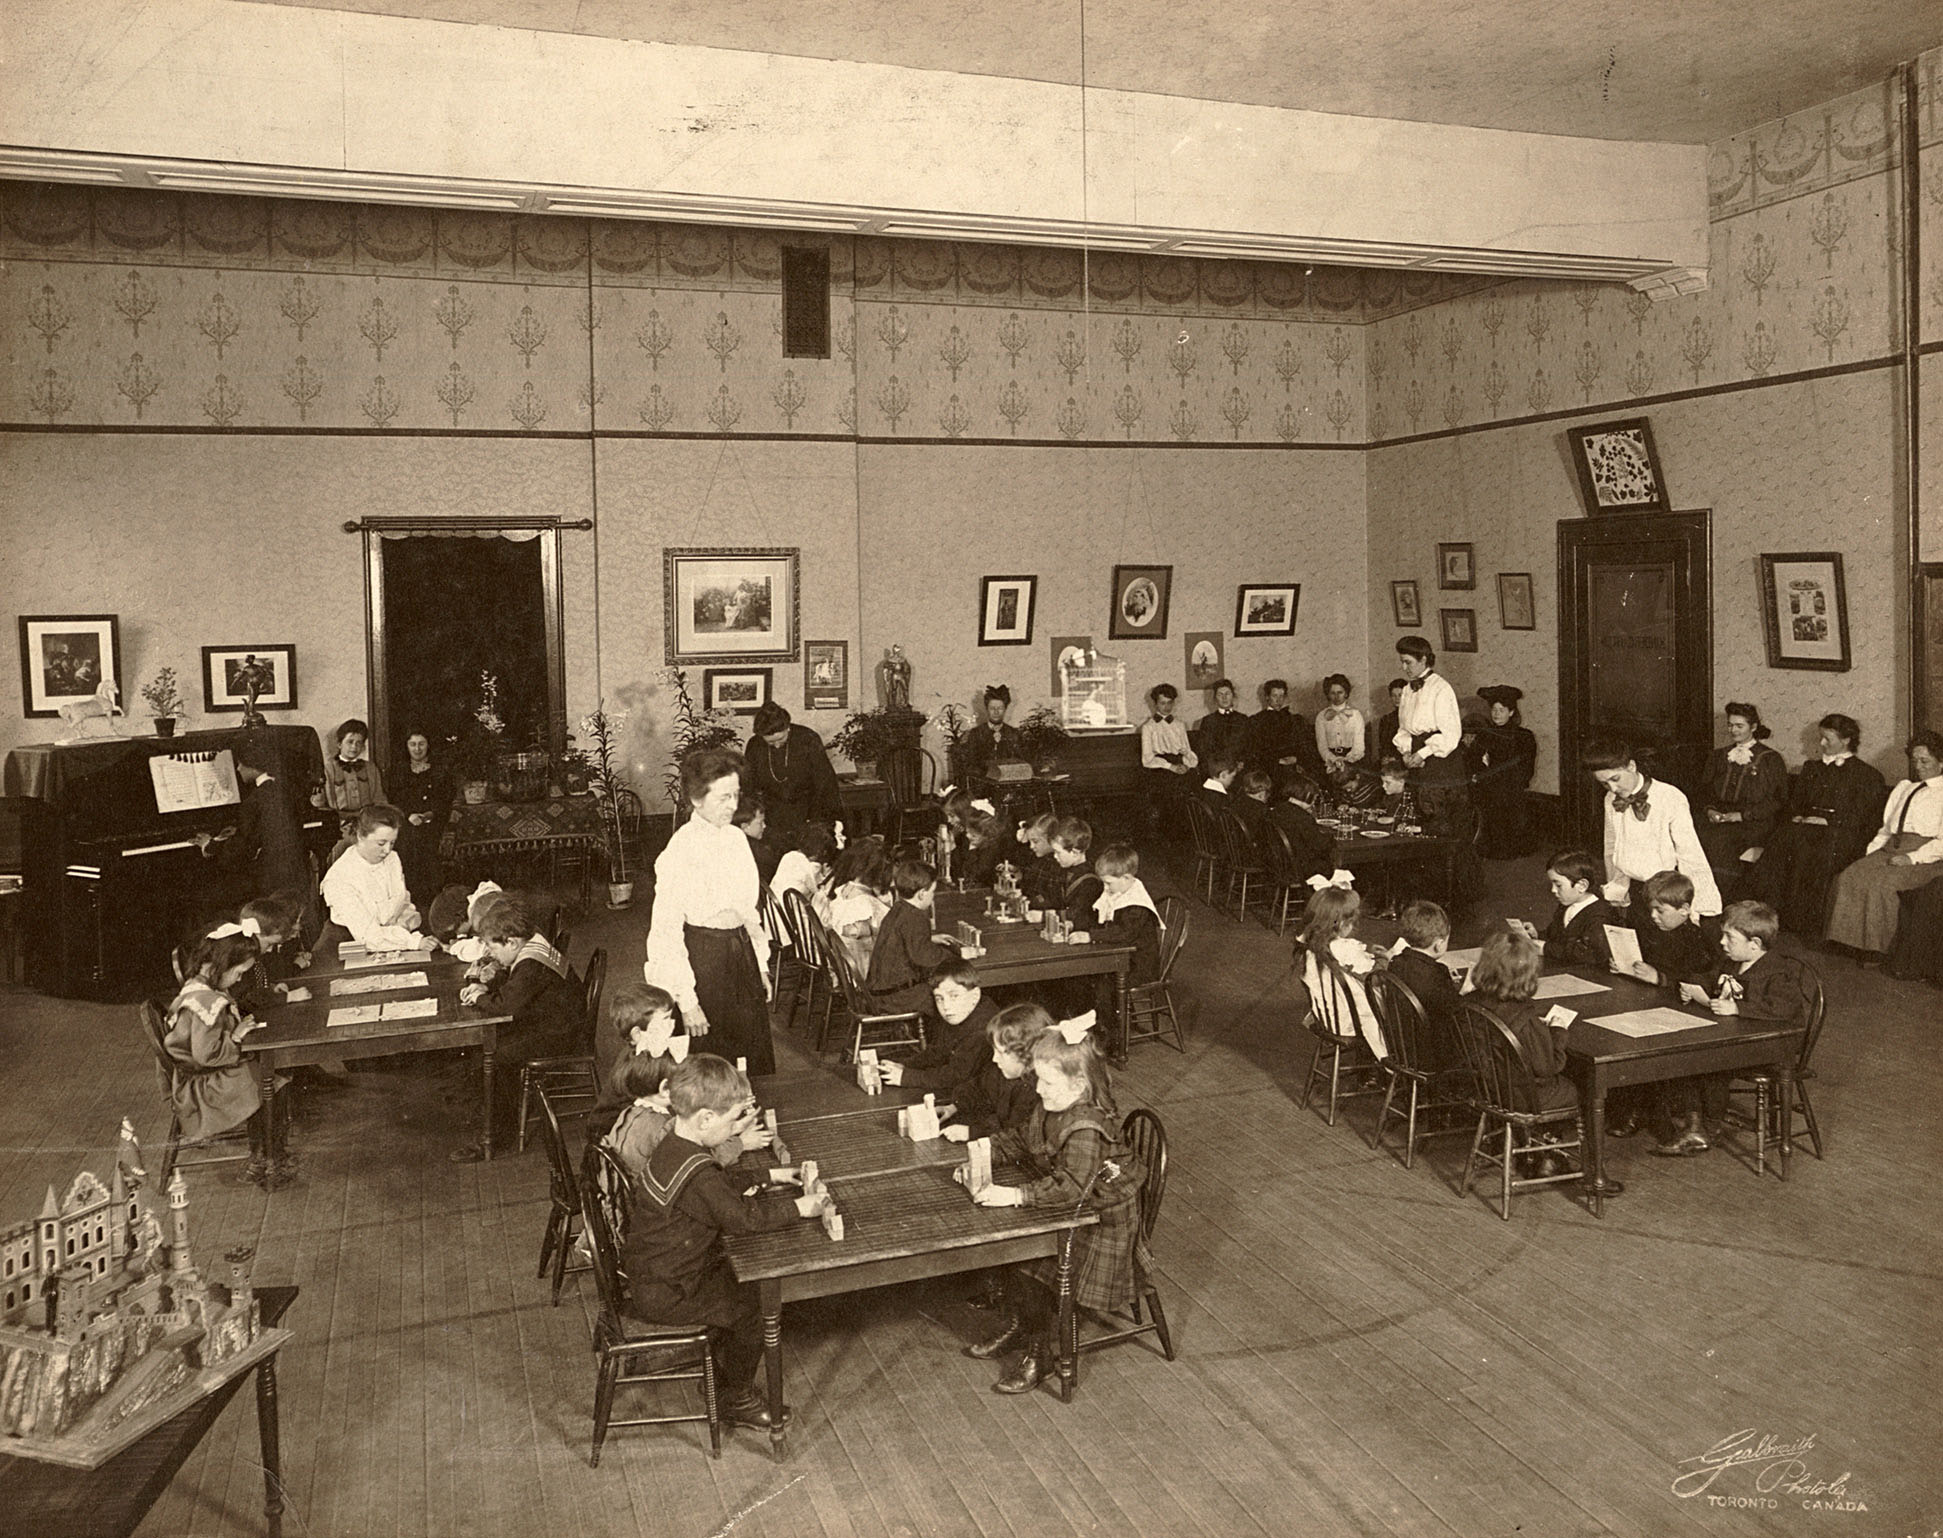 Student teachers training in a kindergarten class in 1898 in Toronto, Canada. Wikipedia.